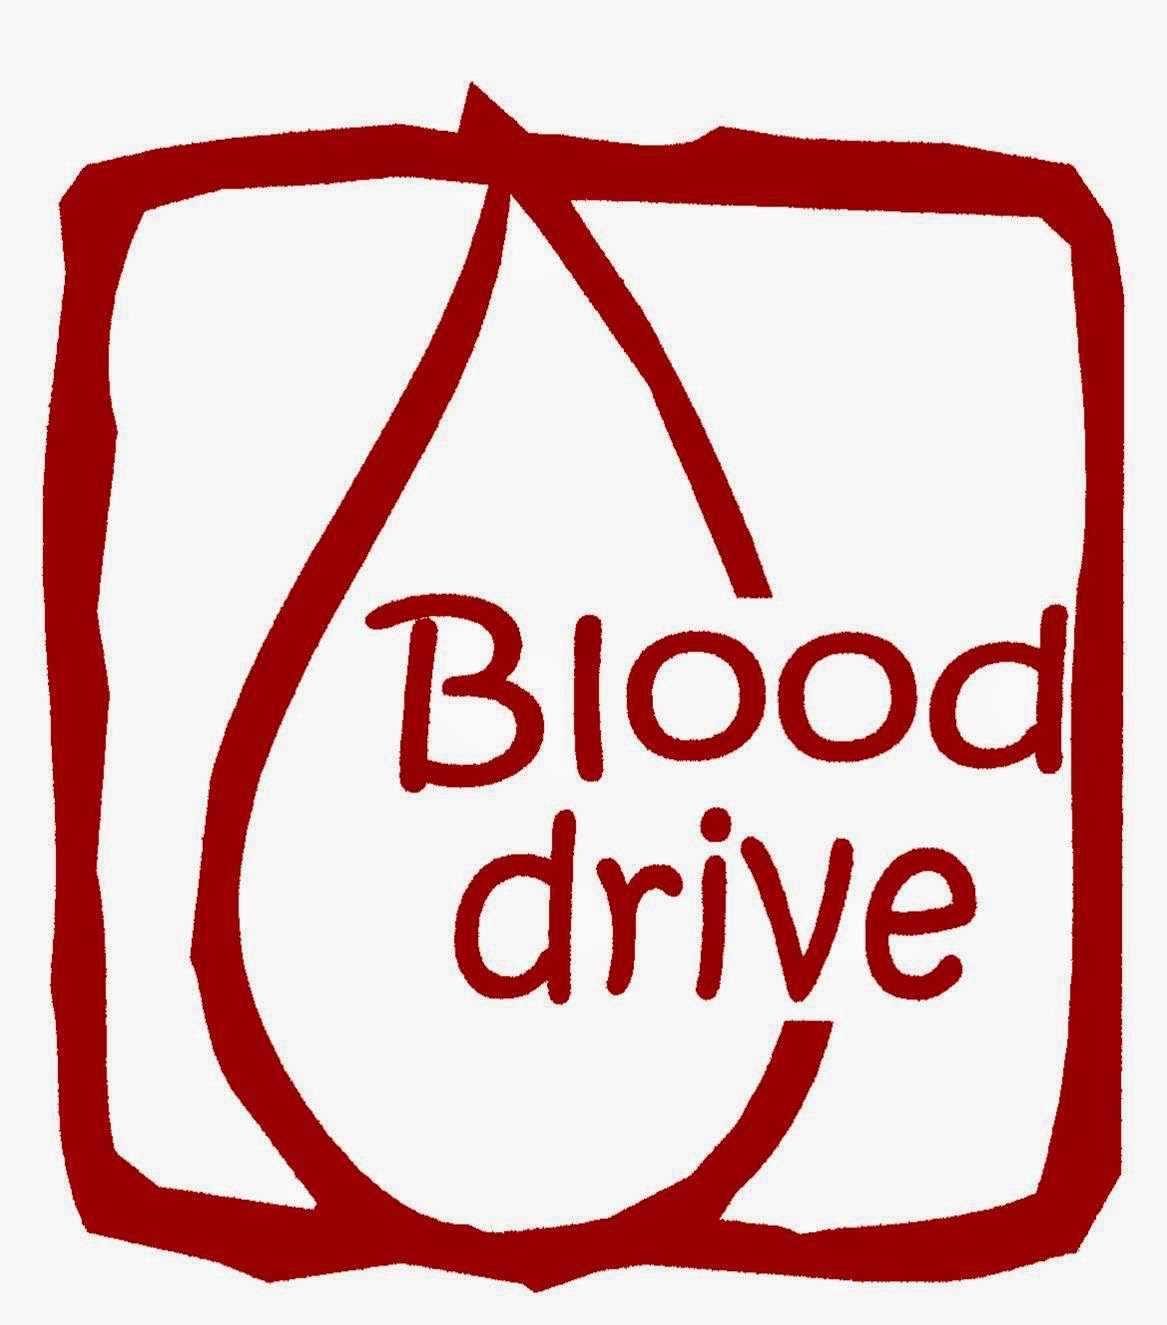 Ogden Community Blood Drive